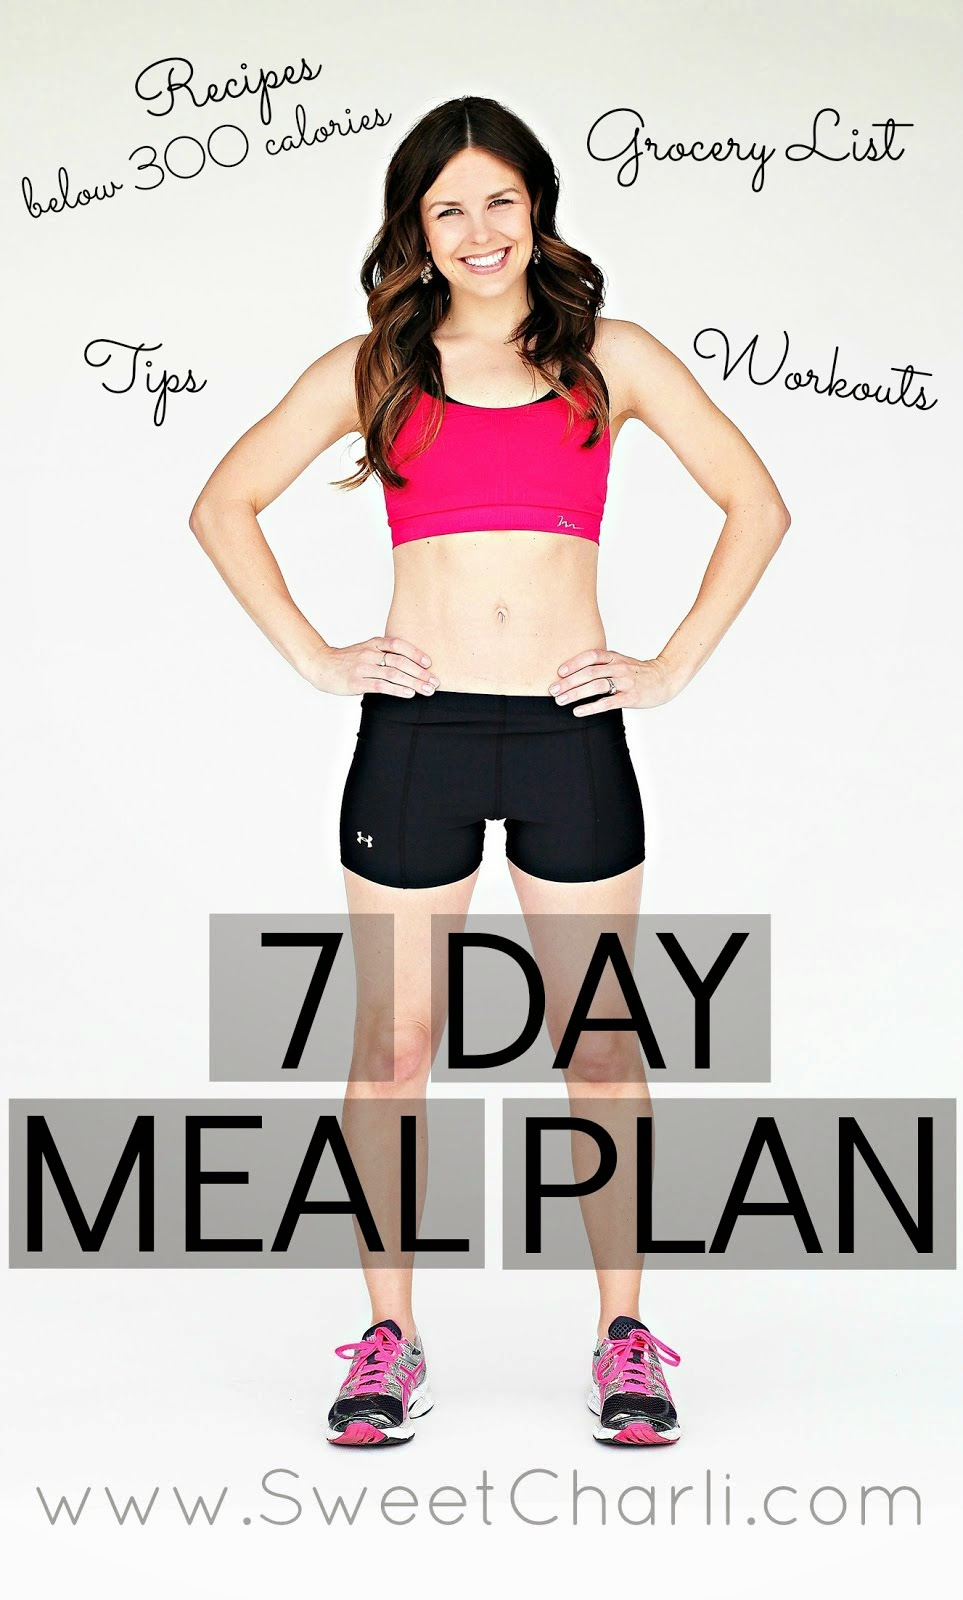 Get Your 7 Day Meal Plan!